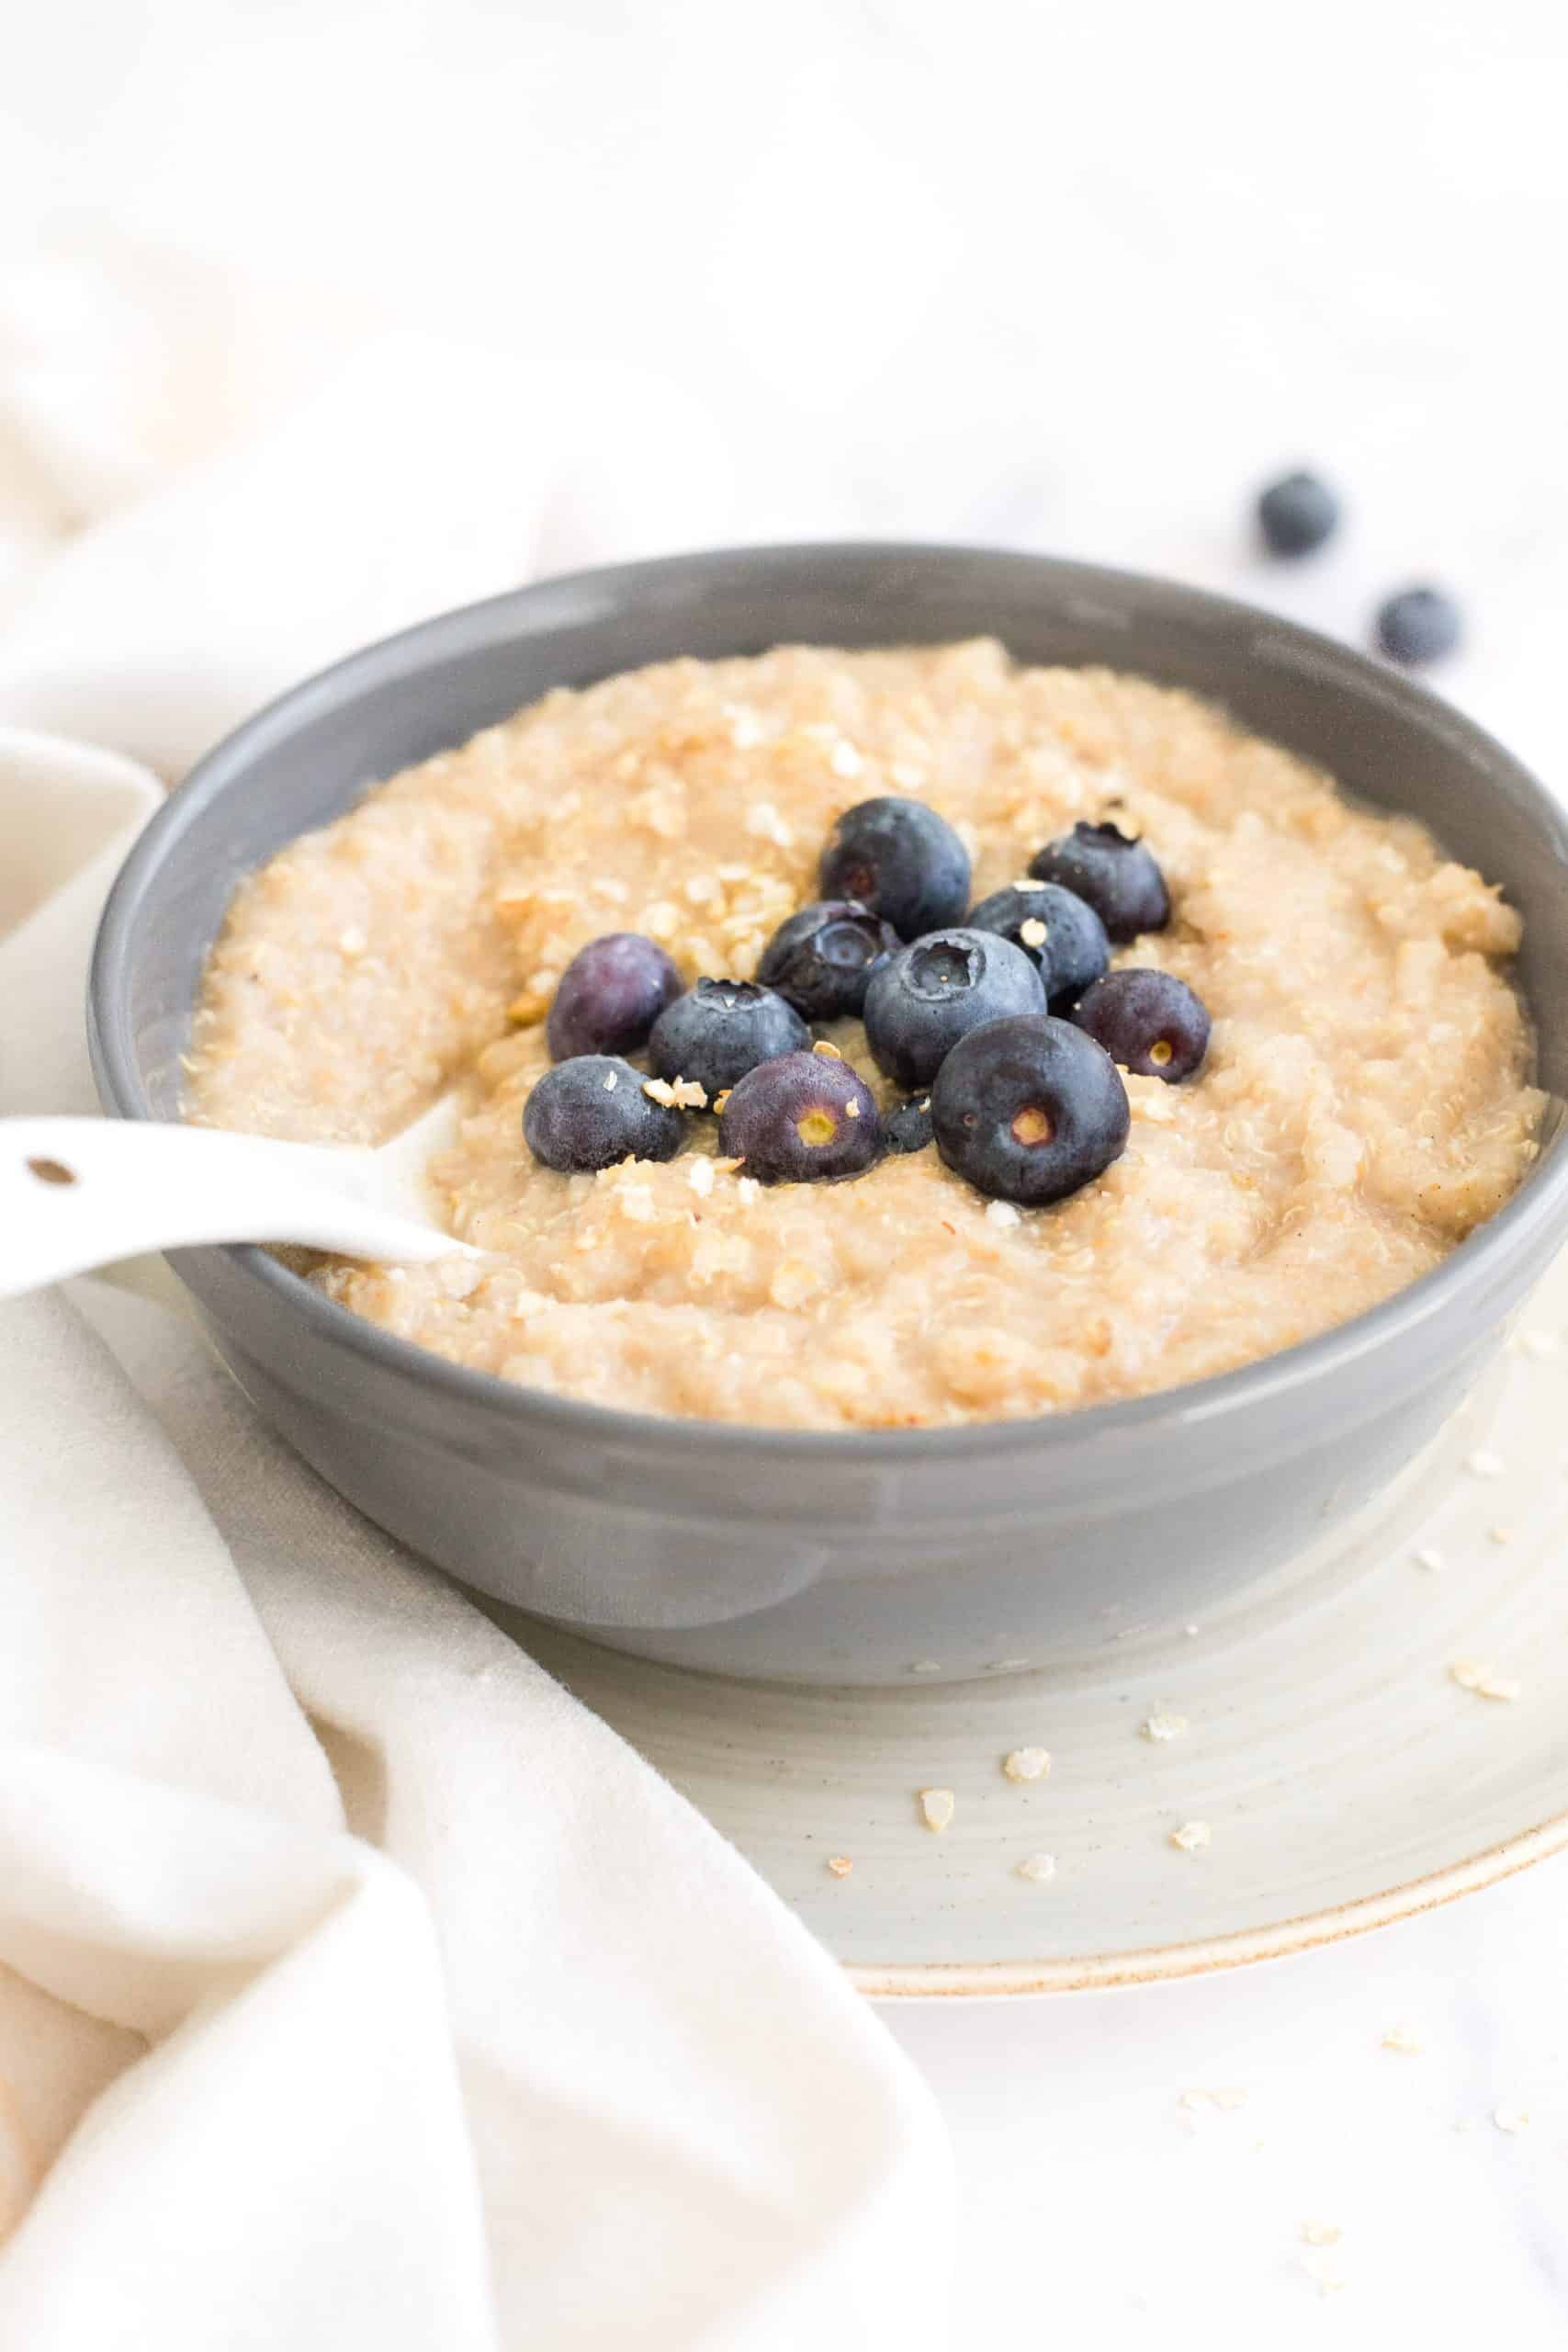 A spoon in a bowl of porridge with blueberries.